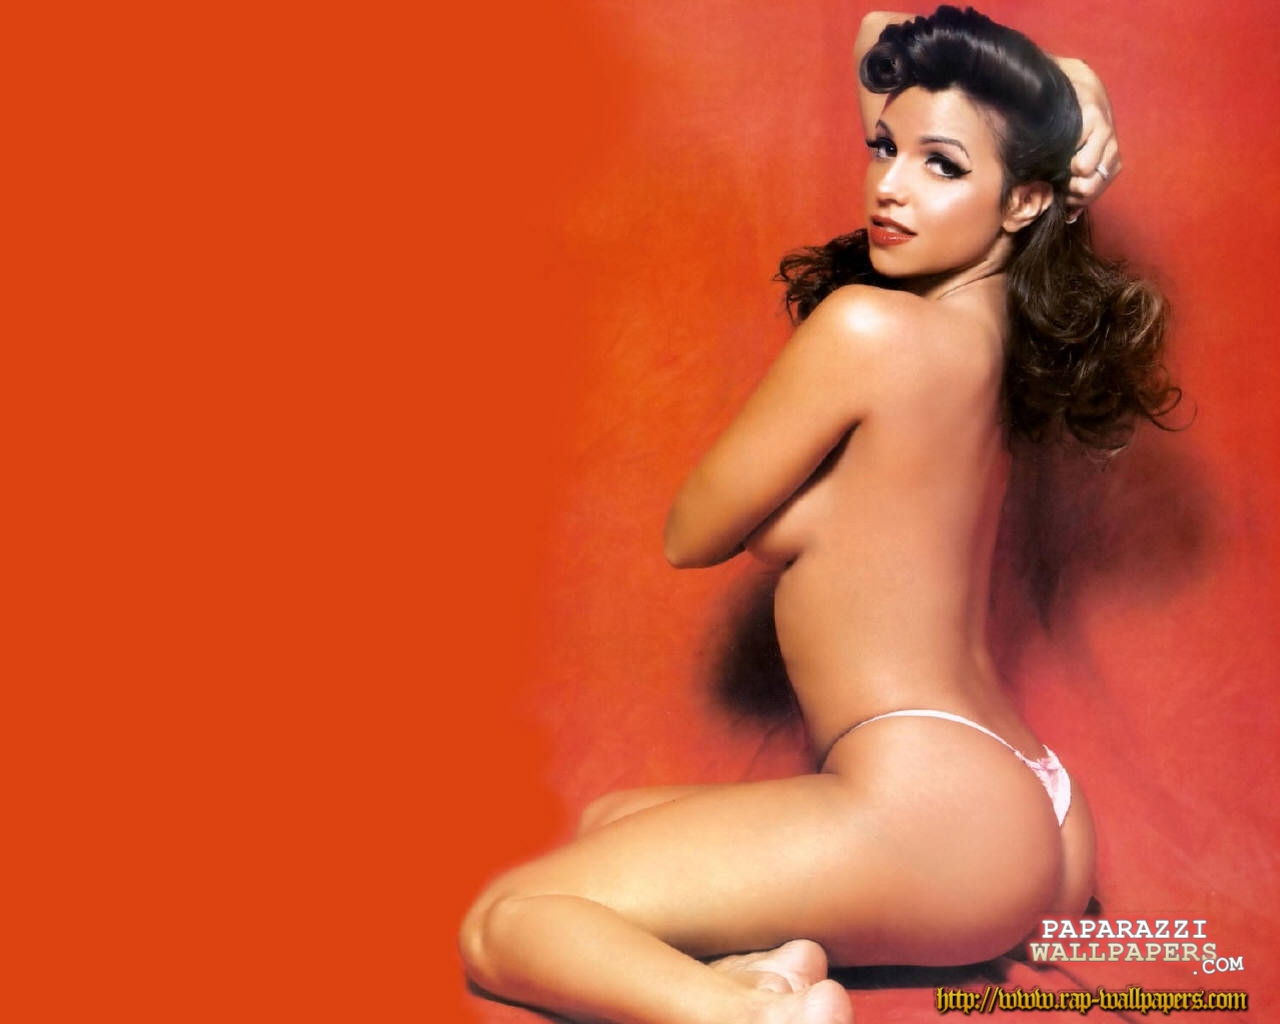 vida guerra wallpapers 052